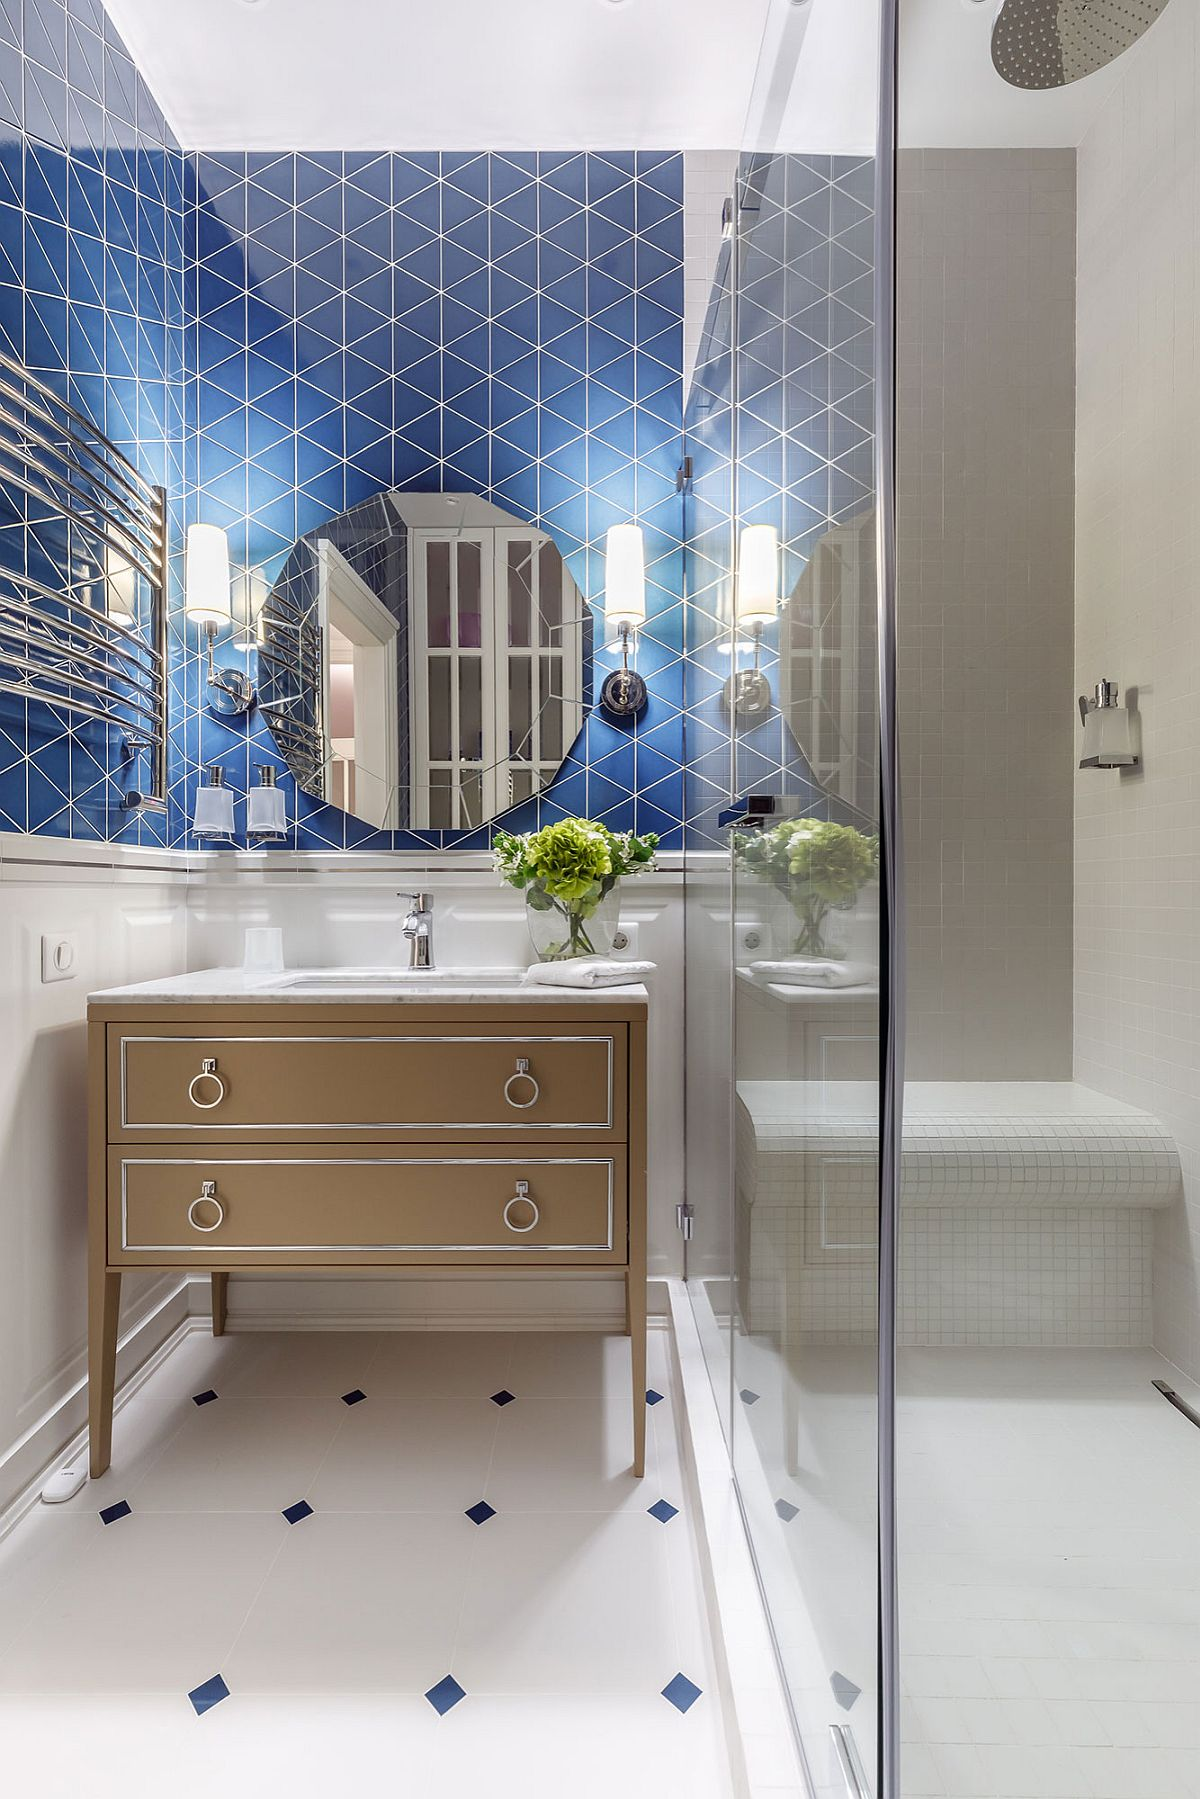 Blue tiles in the backdrop bring both color and pattern to this small white bathroom